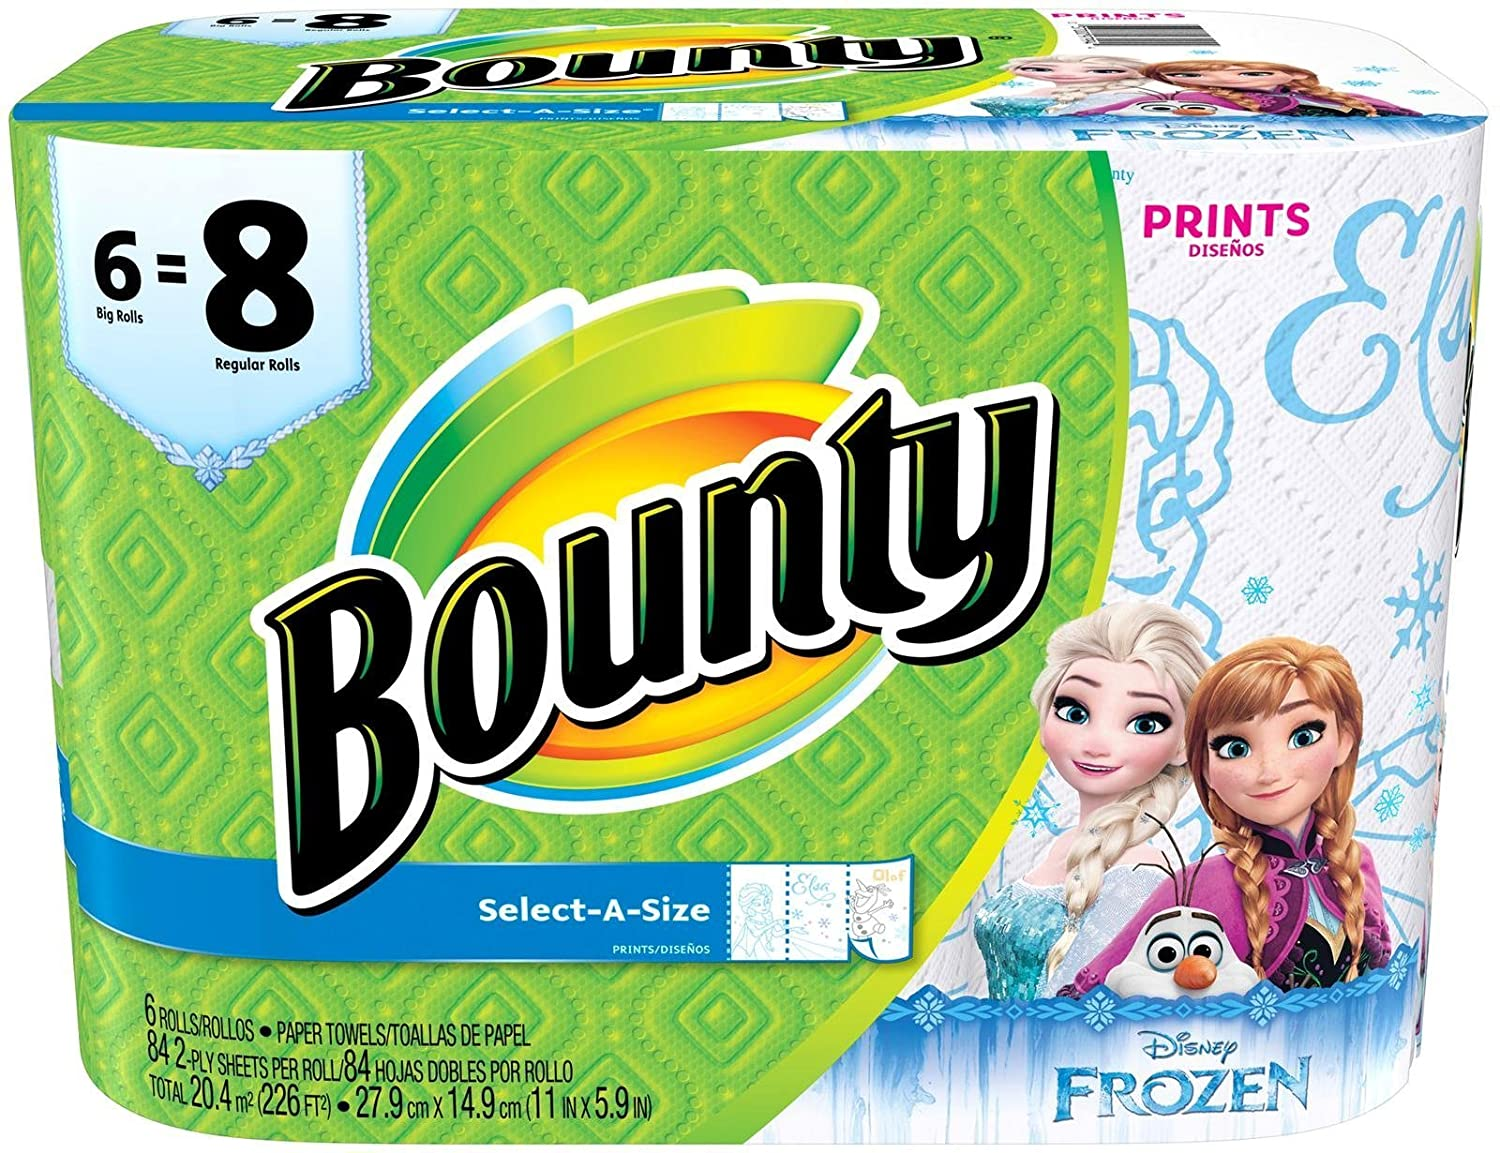 Amazon.com: Bounty Select-a-size Paper Towels, Disney Frozen Print, Big Rolls, 6 Count: Health & Personal Care